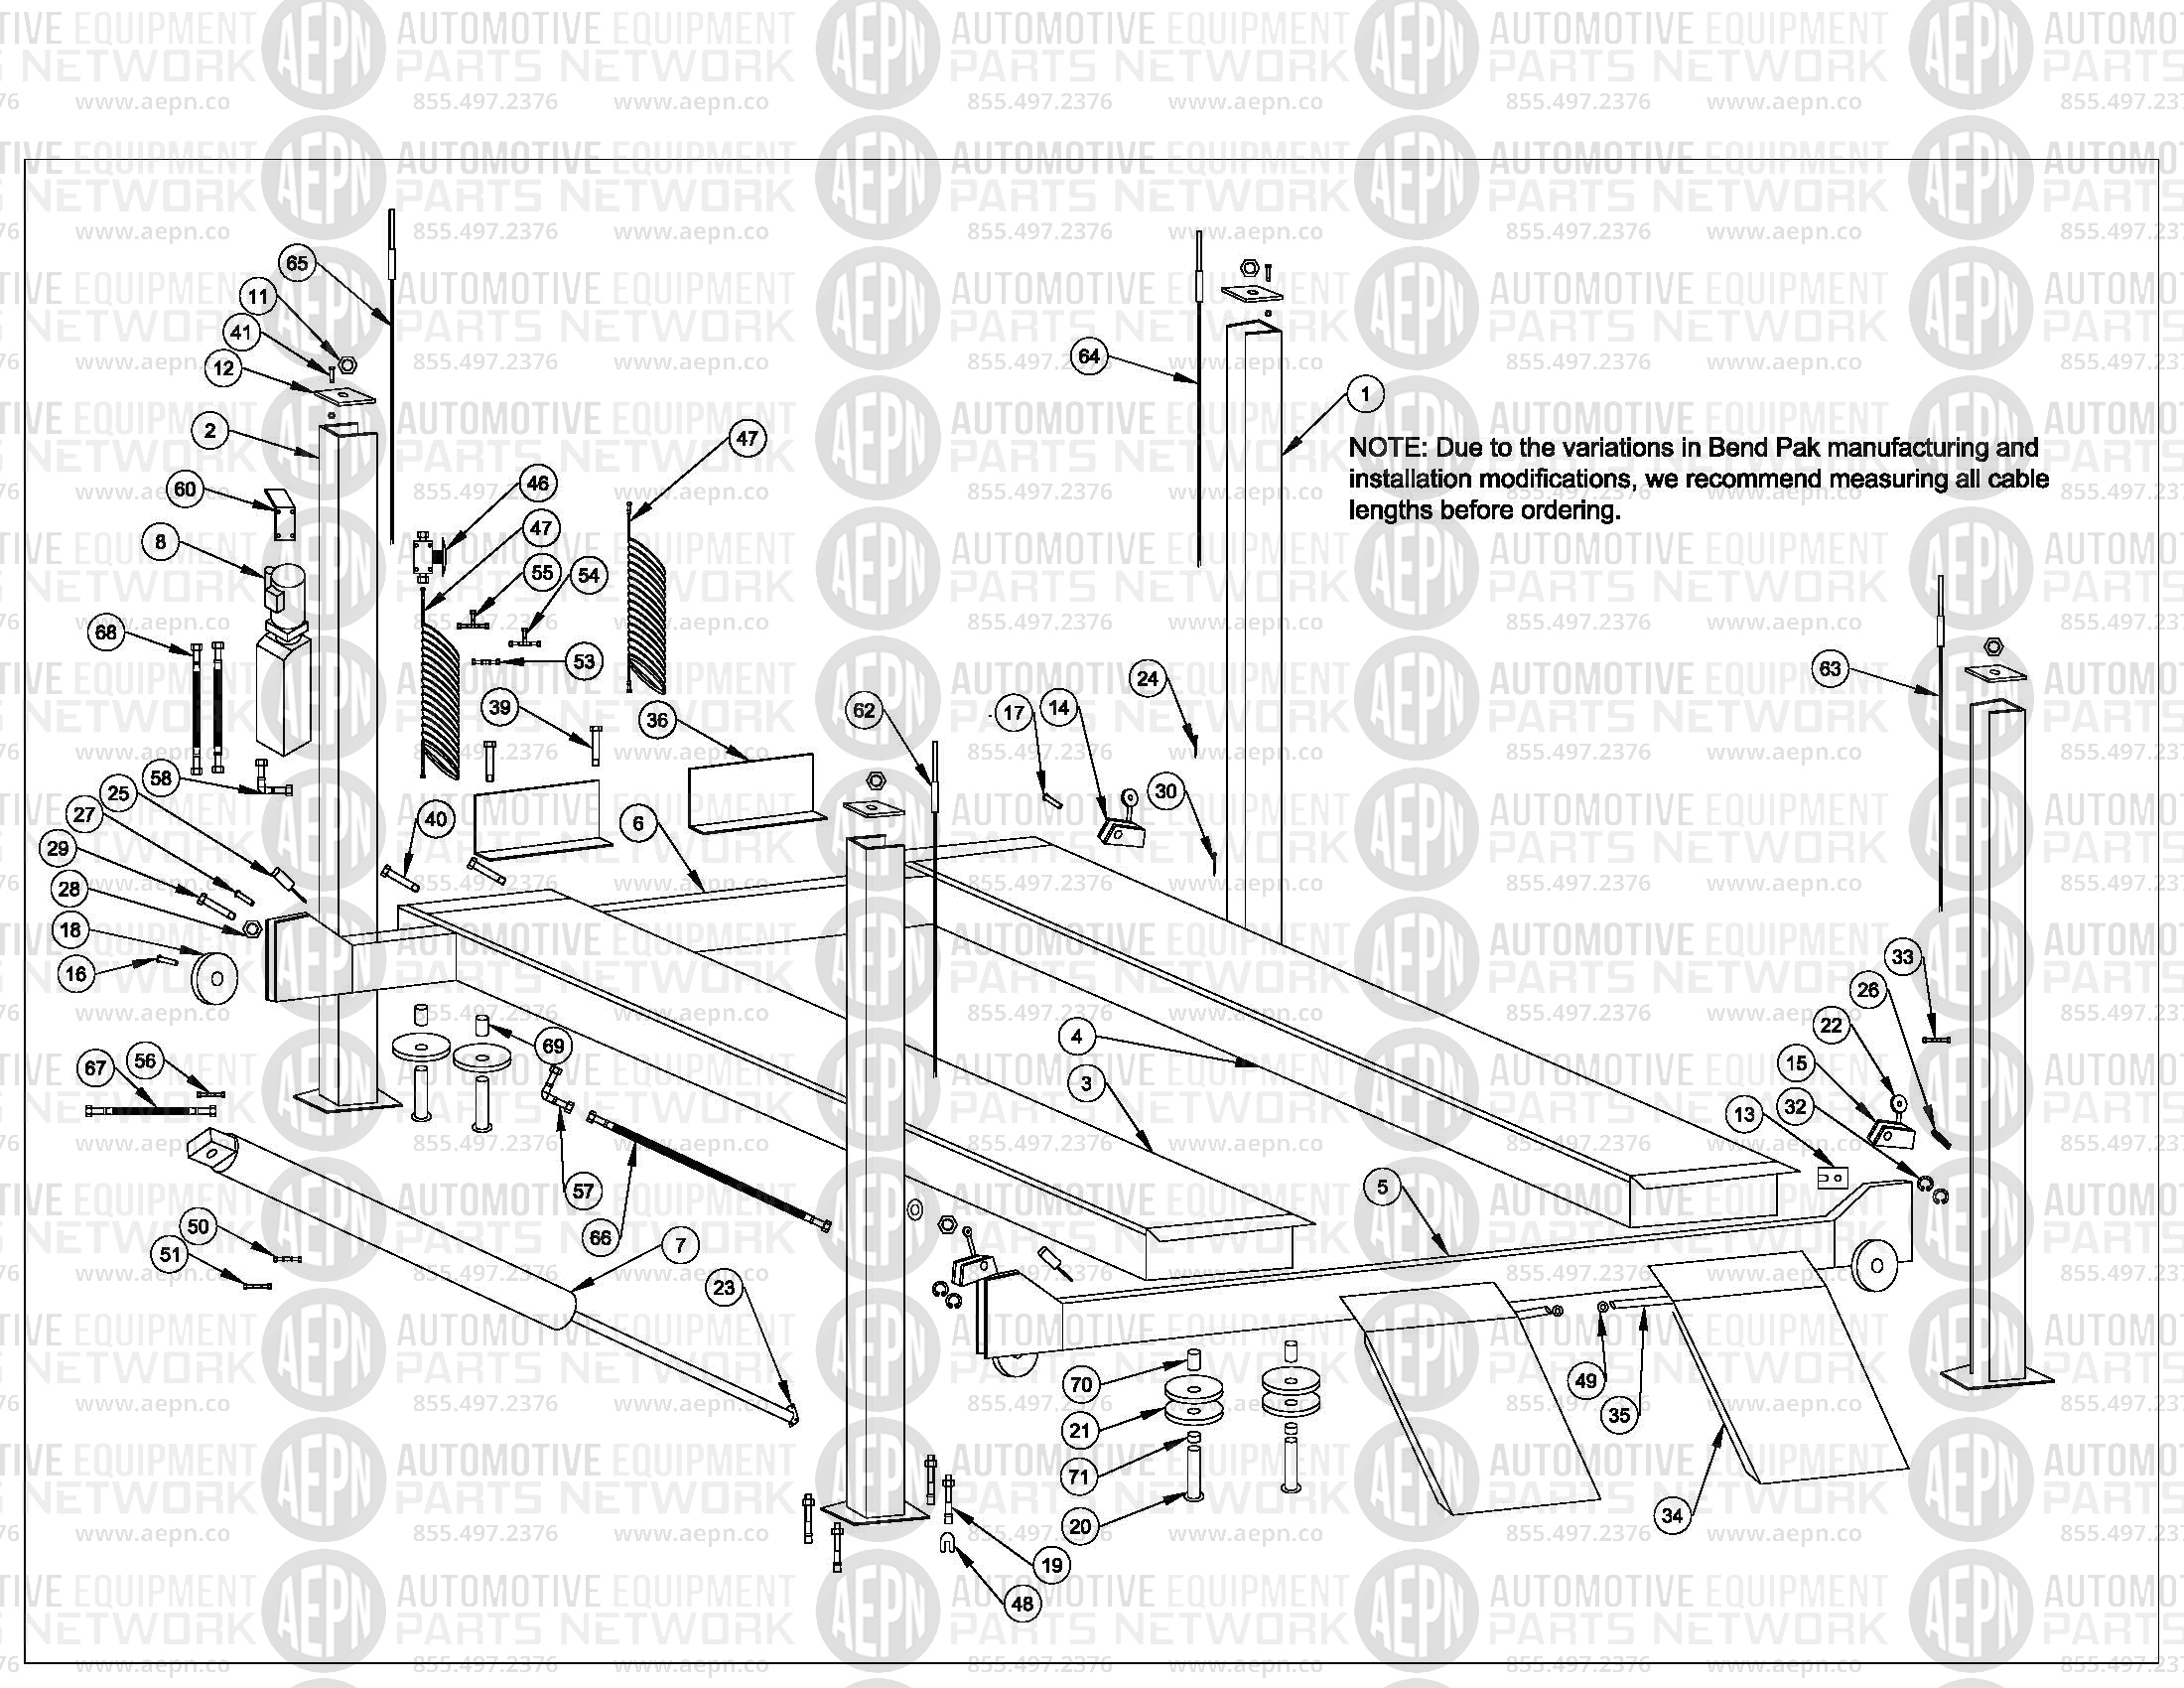 Bendpak Parts Lift Wiring Diagram Bend Pak Hd12x Breakdown Car Lifts Forward Imageresizertoolcom